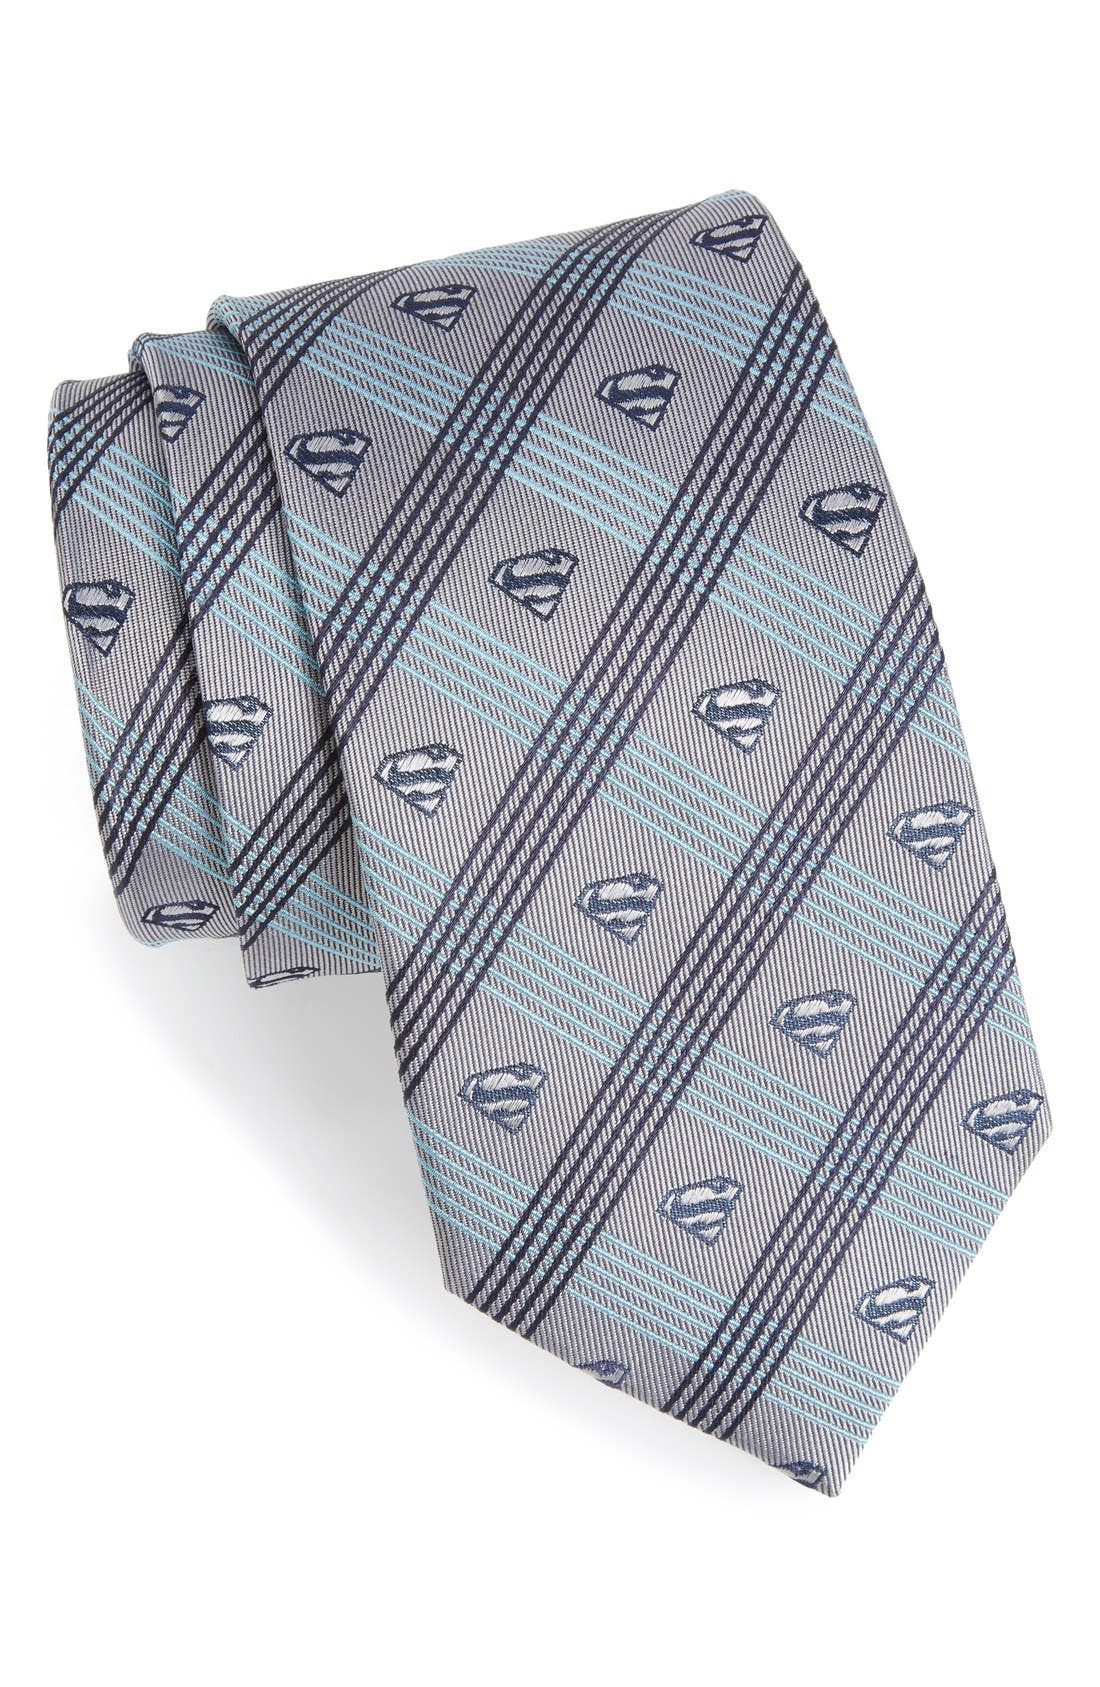 'Superman' Plaid Silk Tie,                         Main,                         color, 020